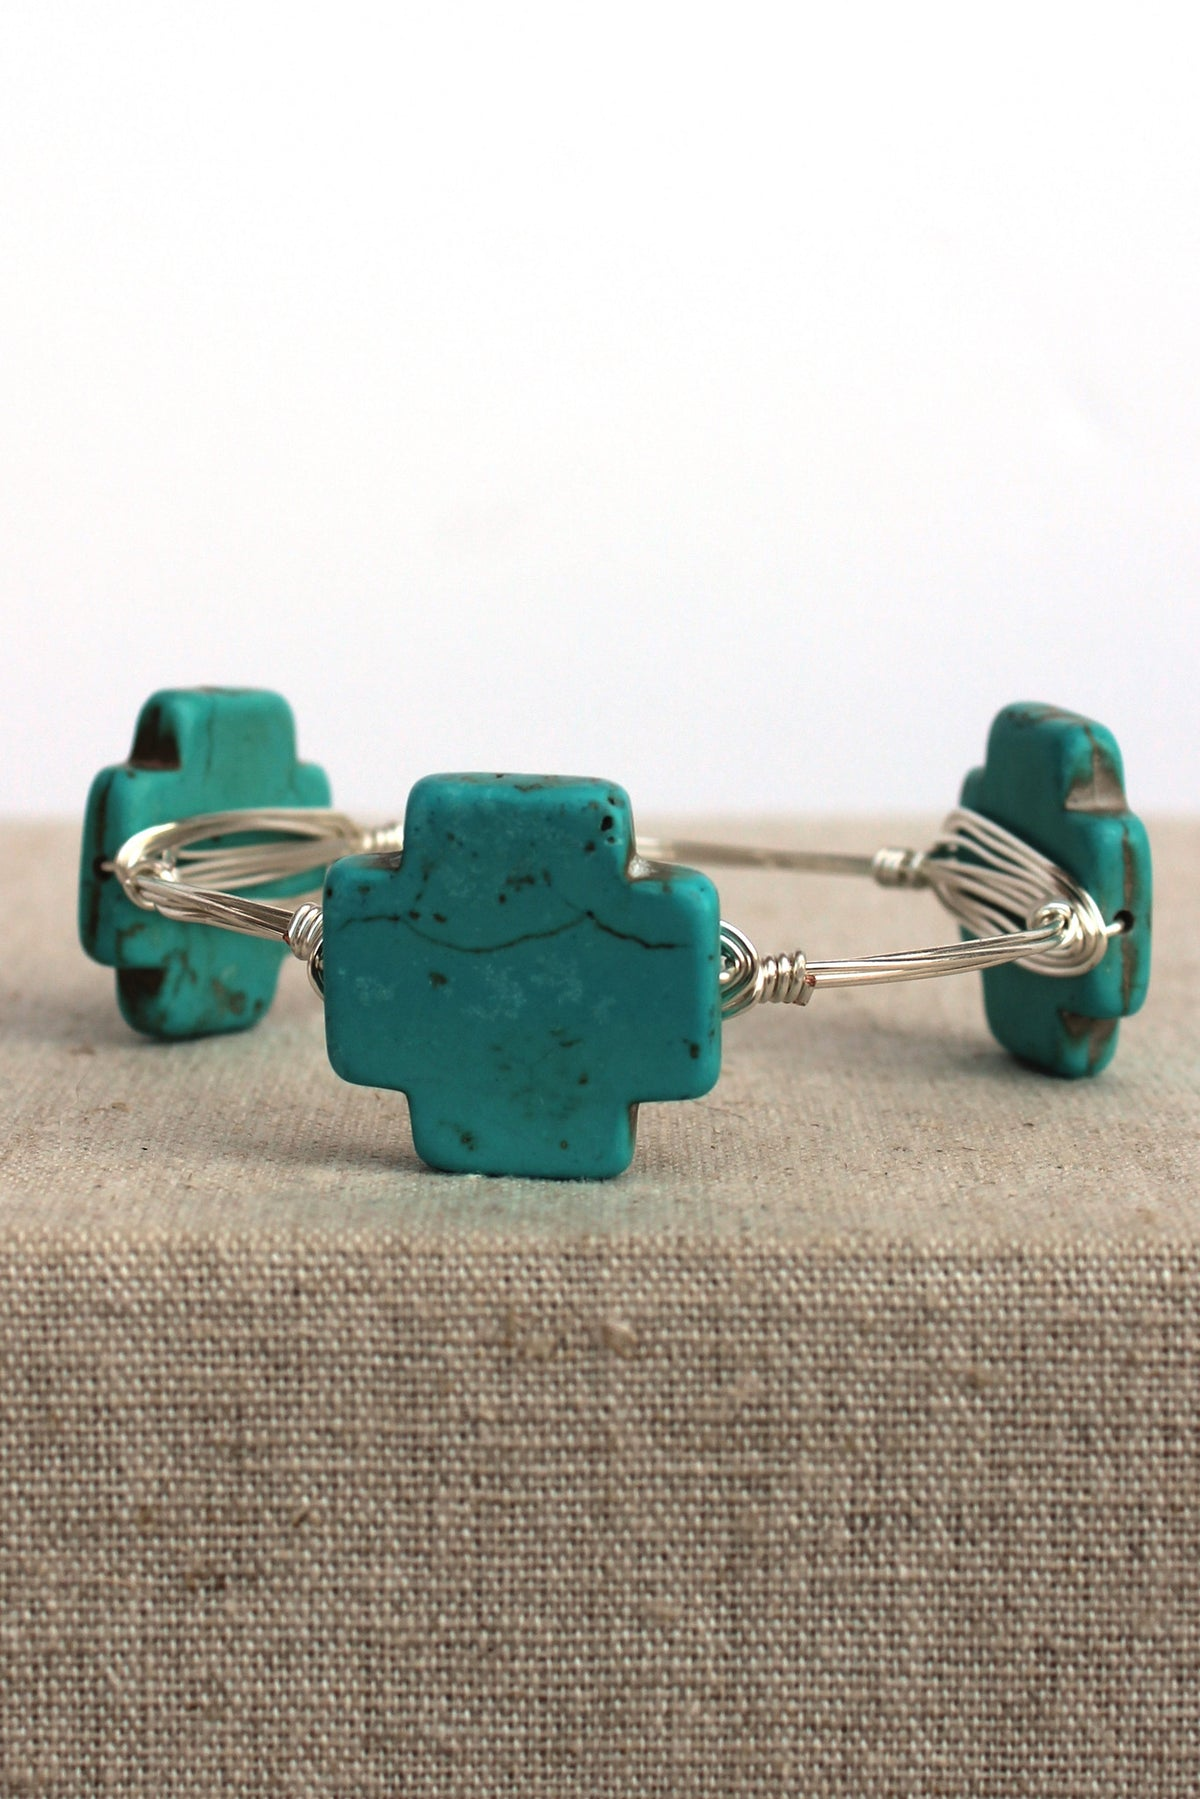 Square Cross Bangle, Turquoise